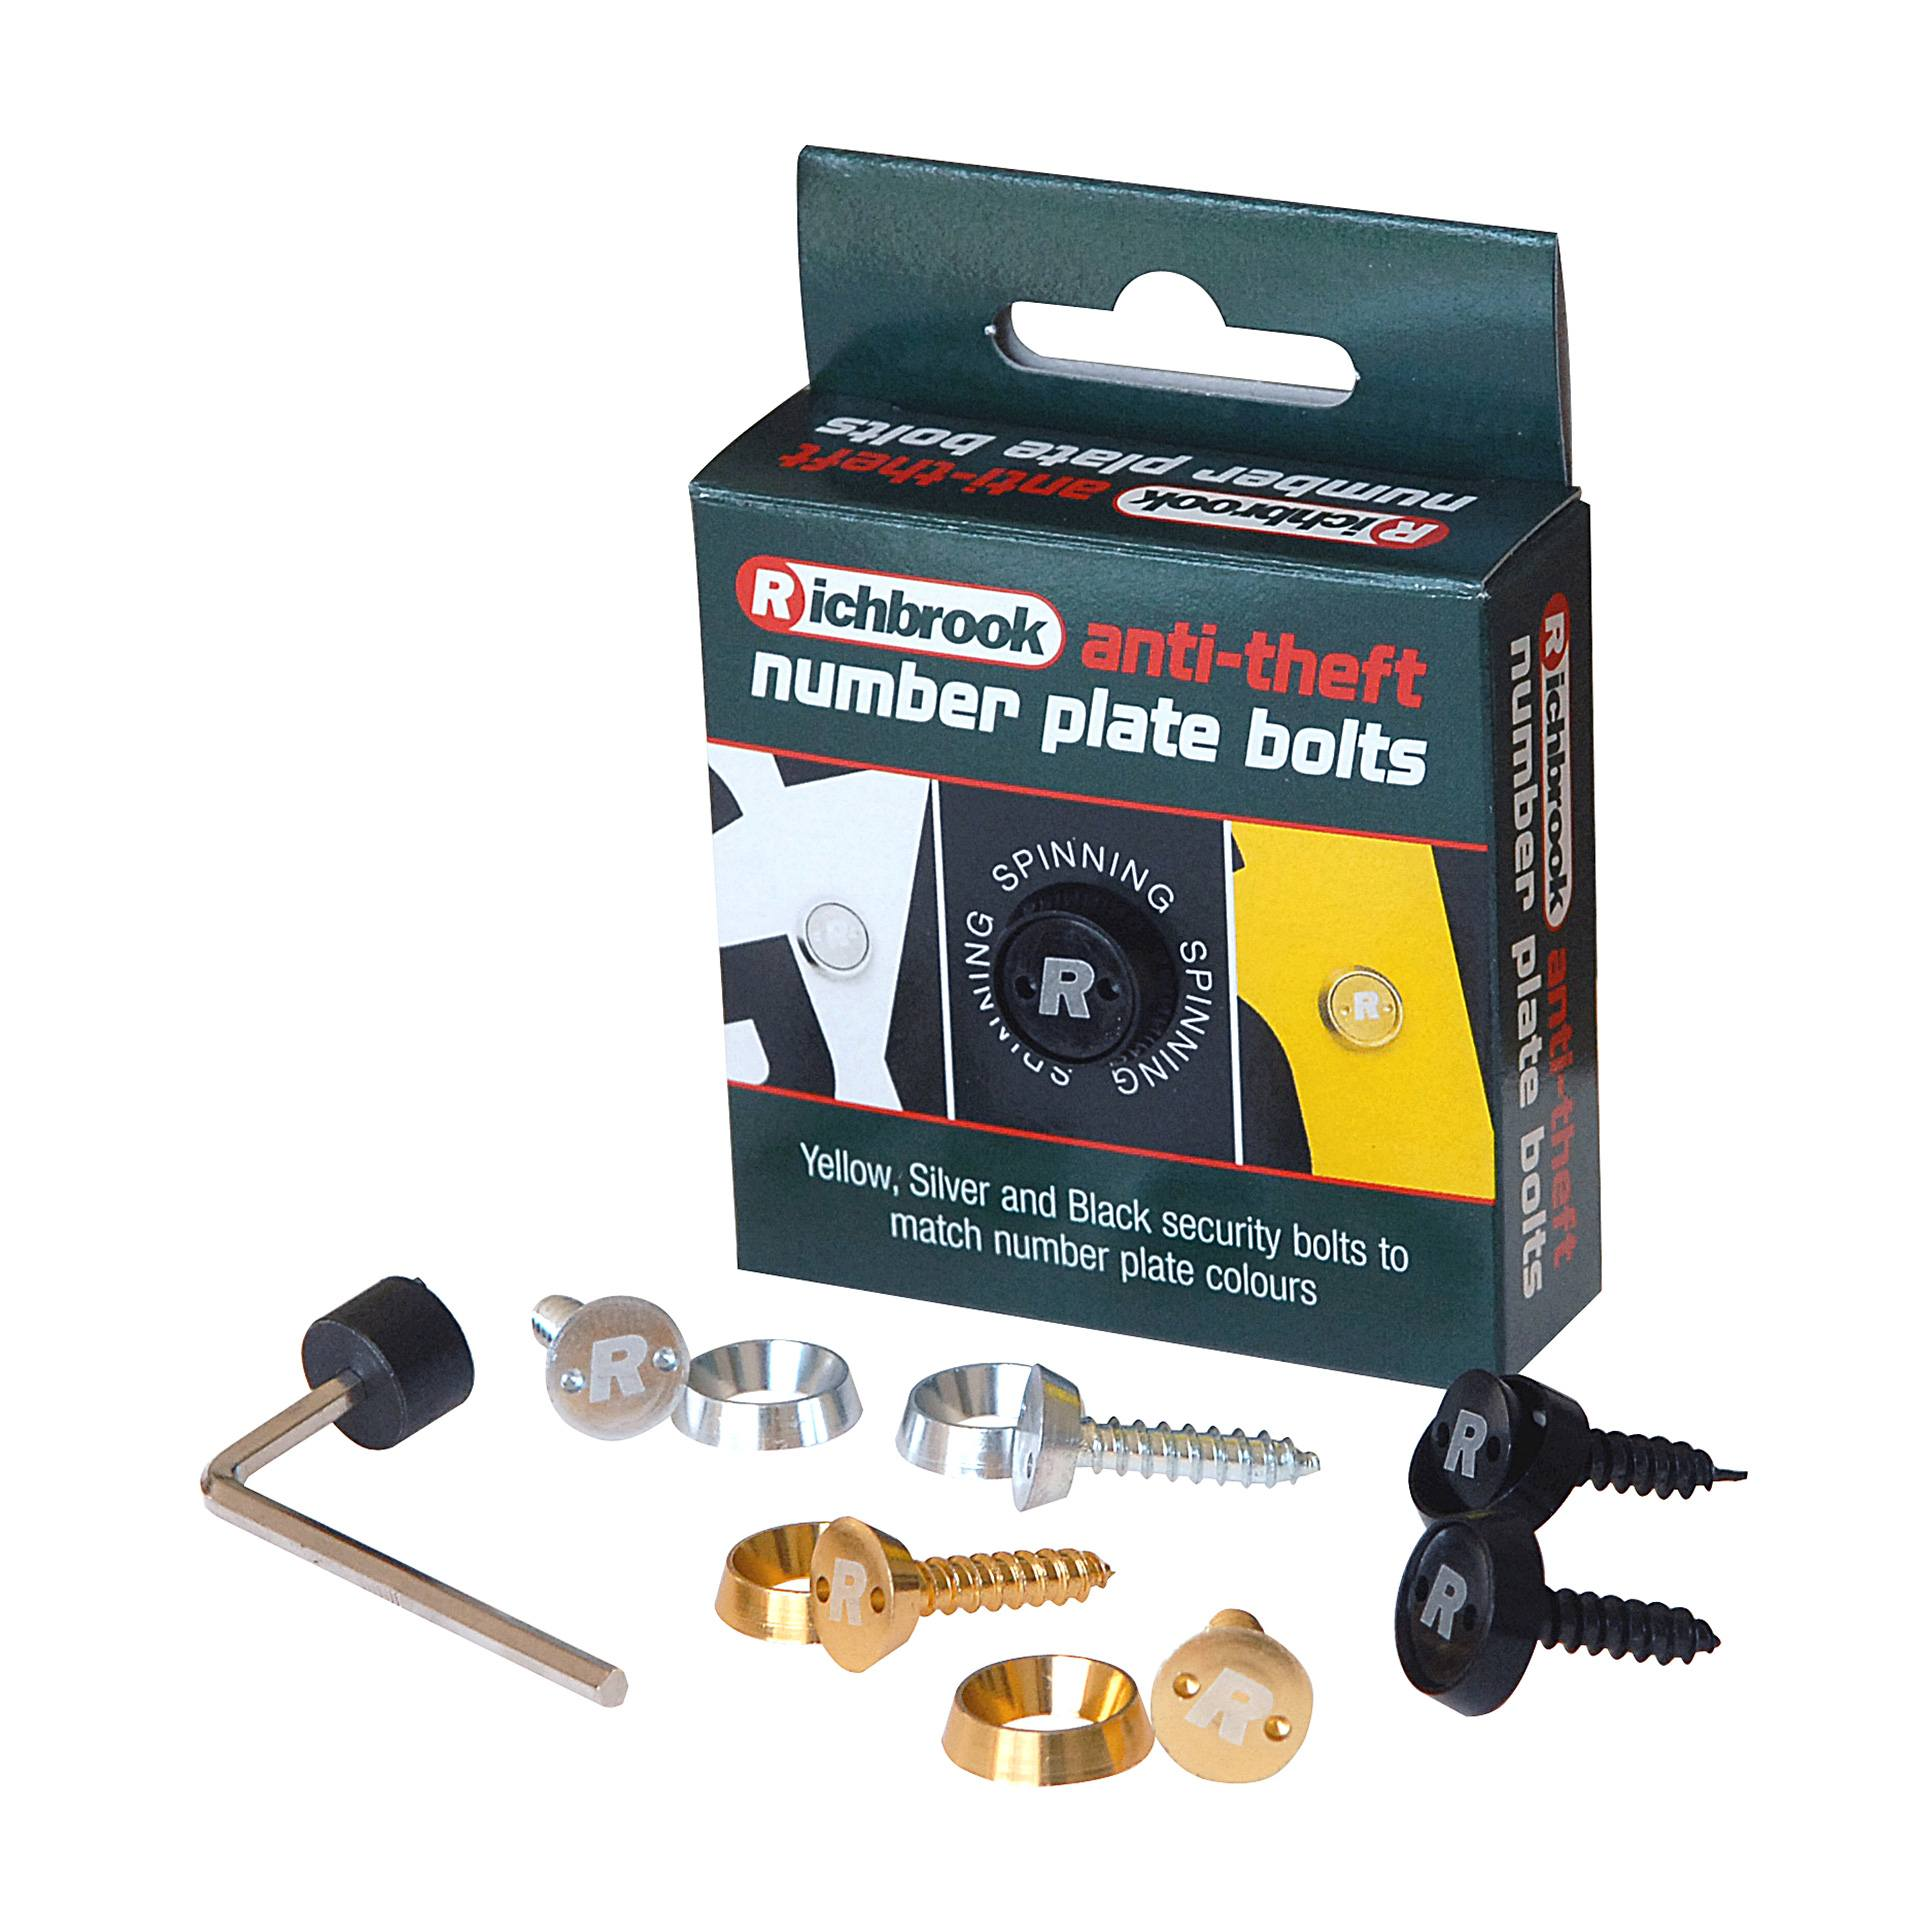 ANTI THEFT Number Plate Bolts.jpg